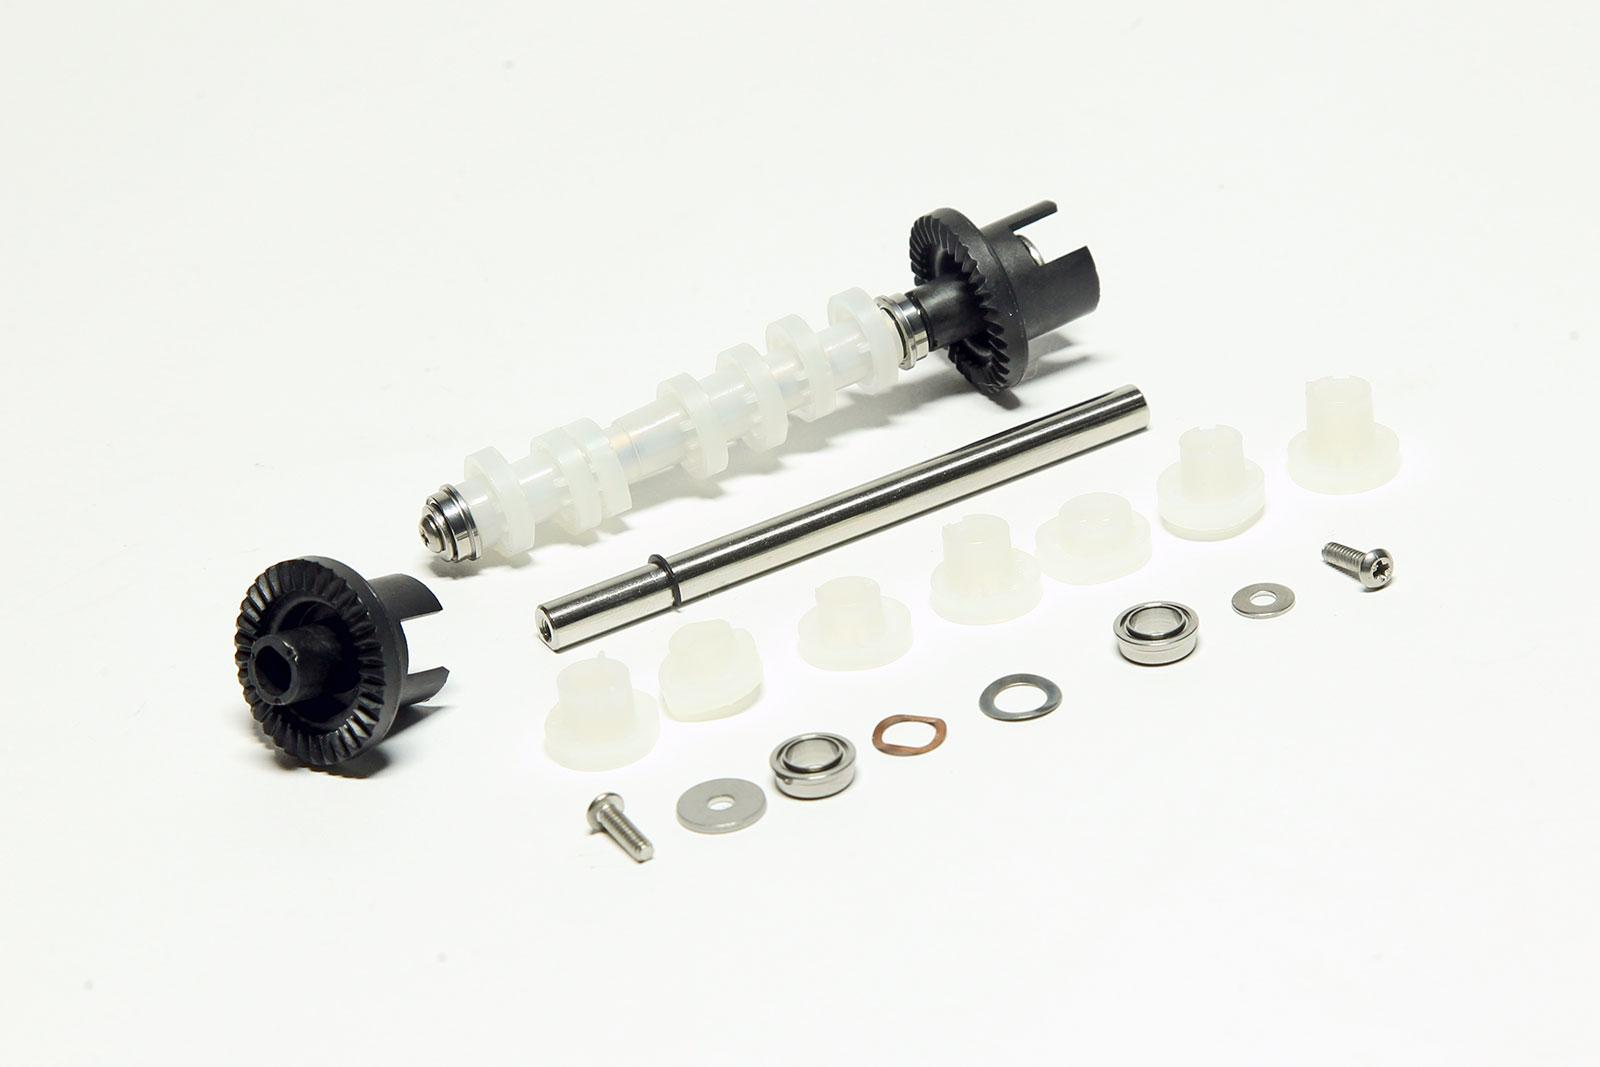 Custom plastic gear and drive systems